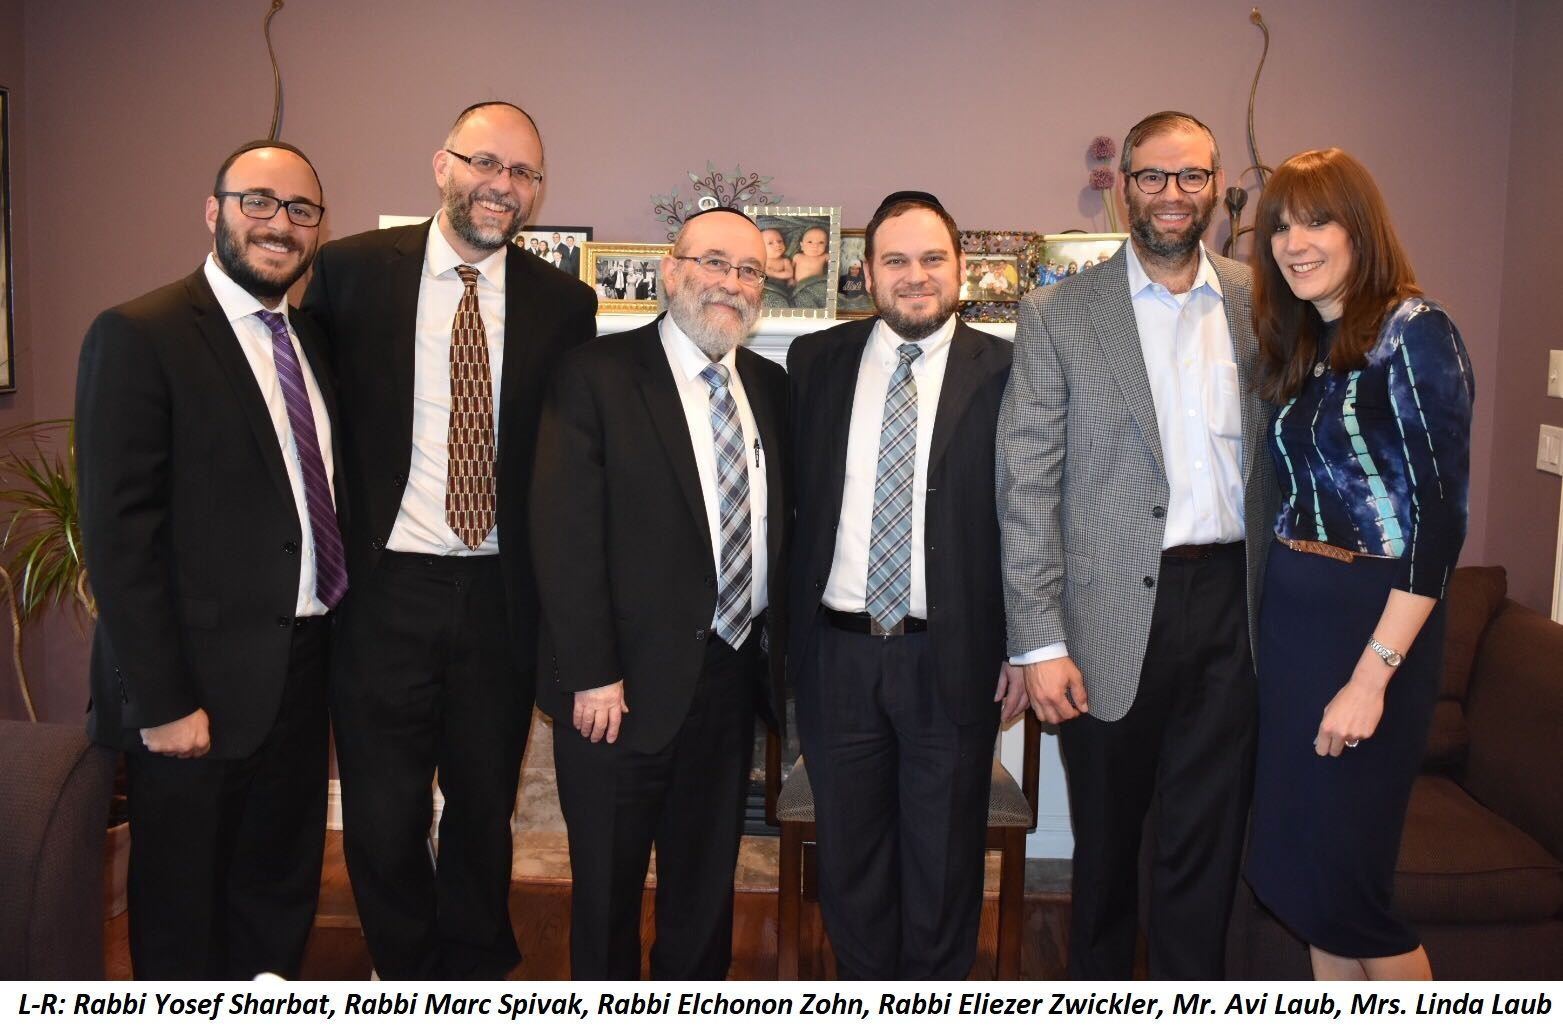 Rabbis and Laubs at the breakfast